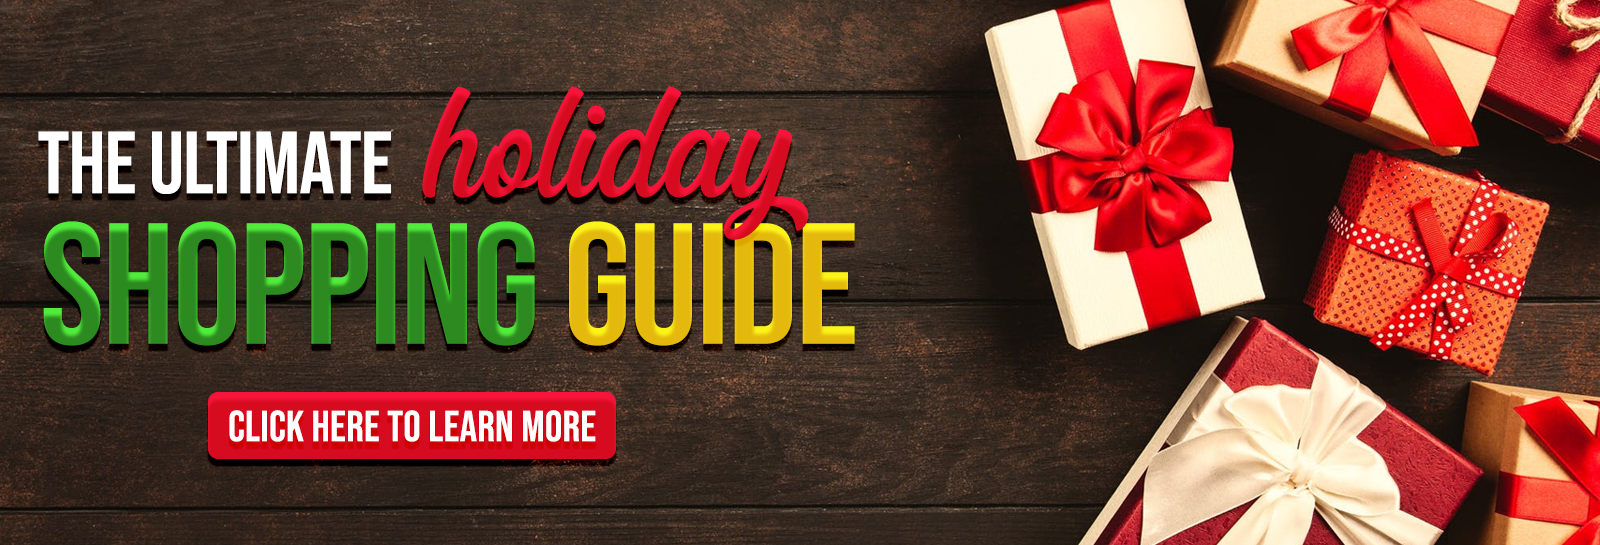 2020 11 20 holiday shopping guide slider